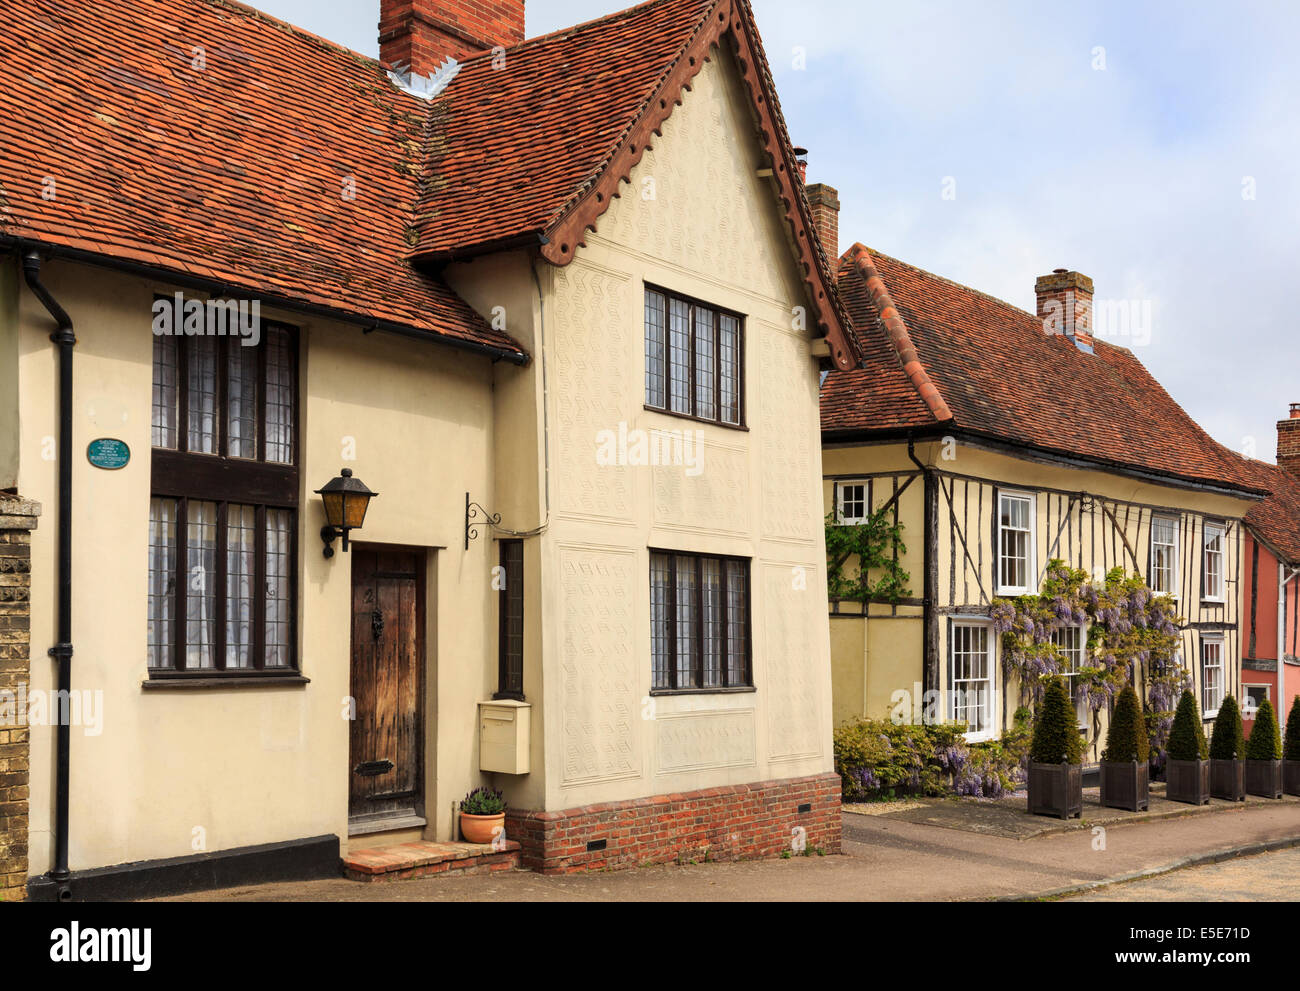 Street scene with quaint old detached houses in village of Lavenham, Suffolk, England, UK, Britain - Stock Image